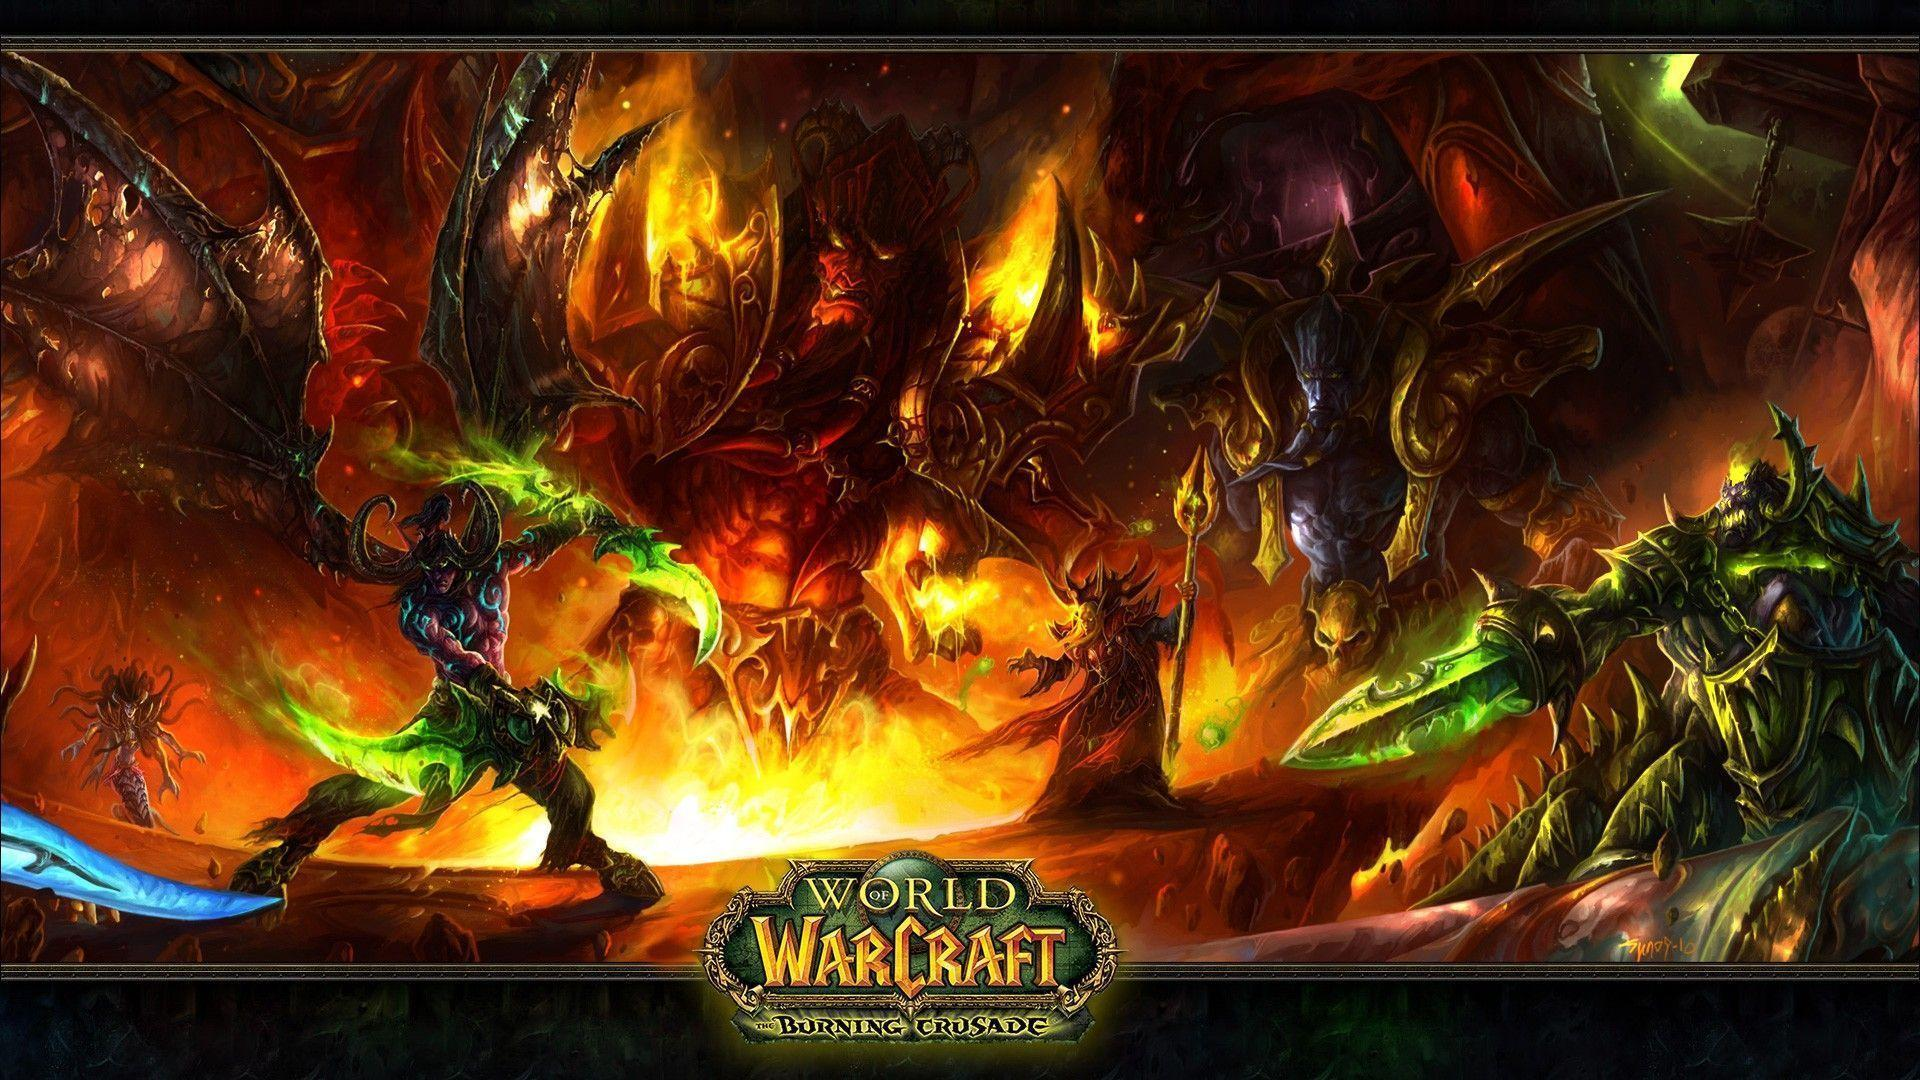 World Of Warcraft Wallpapers | High Quality PC Dekstop Full HD ...